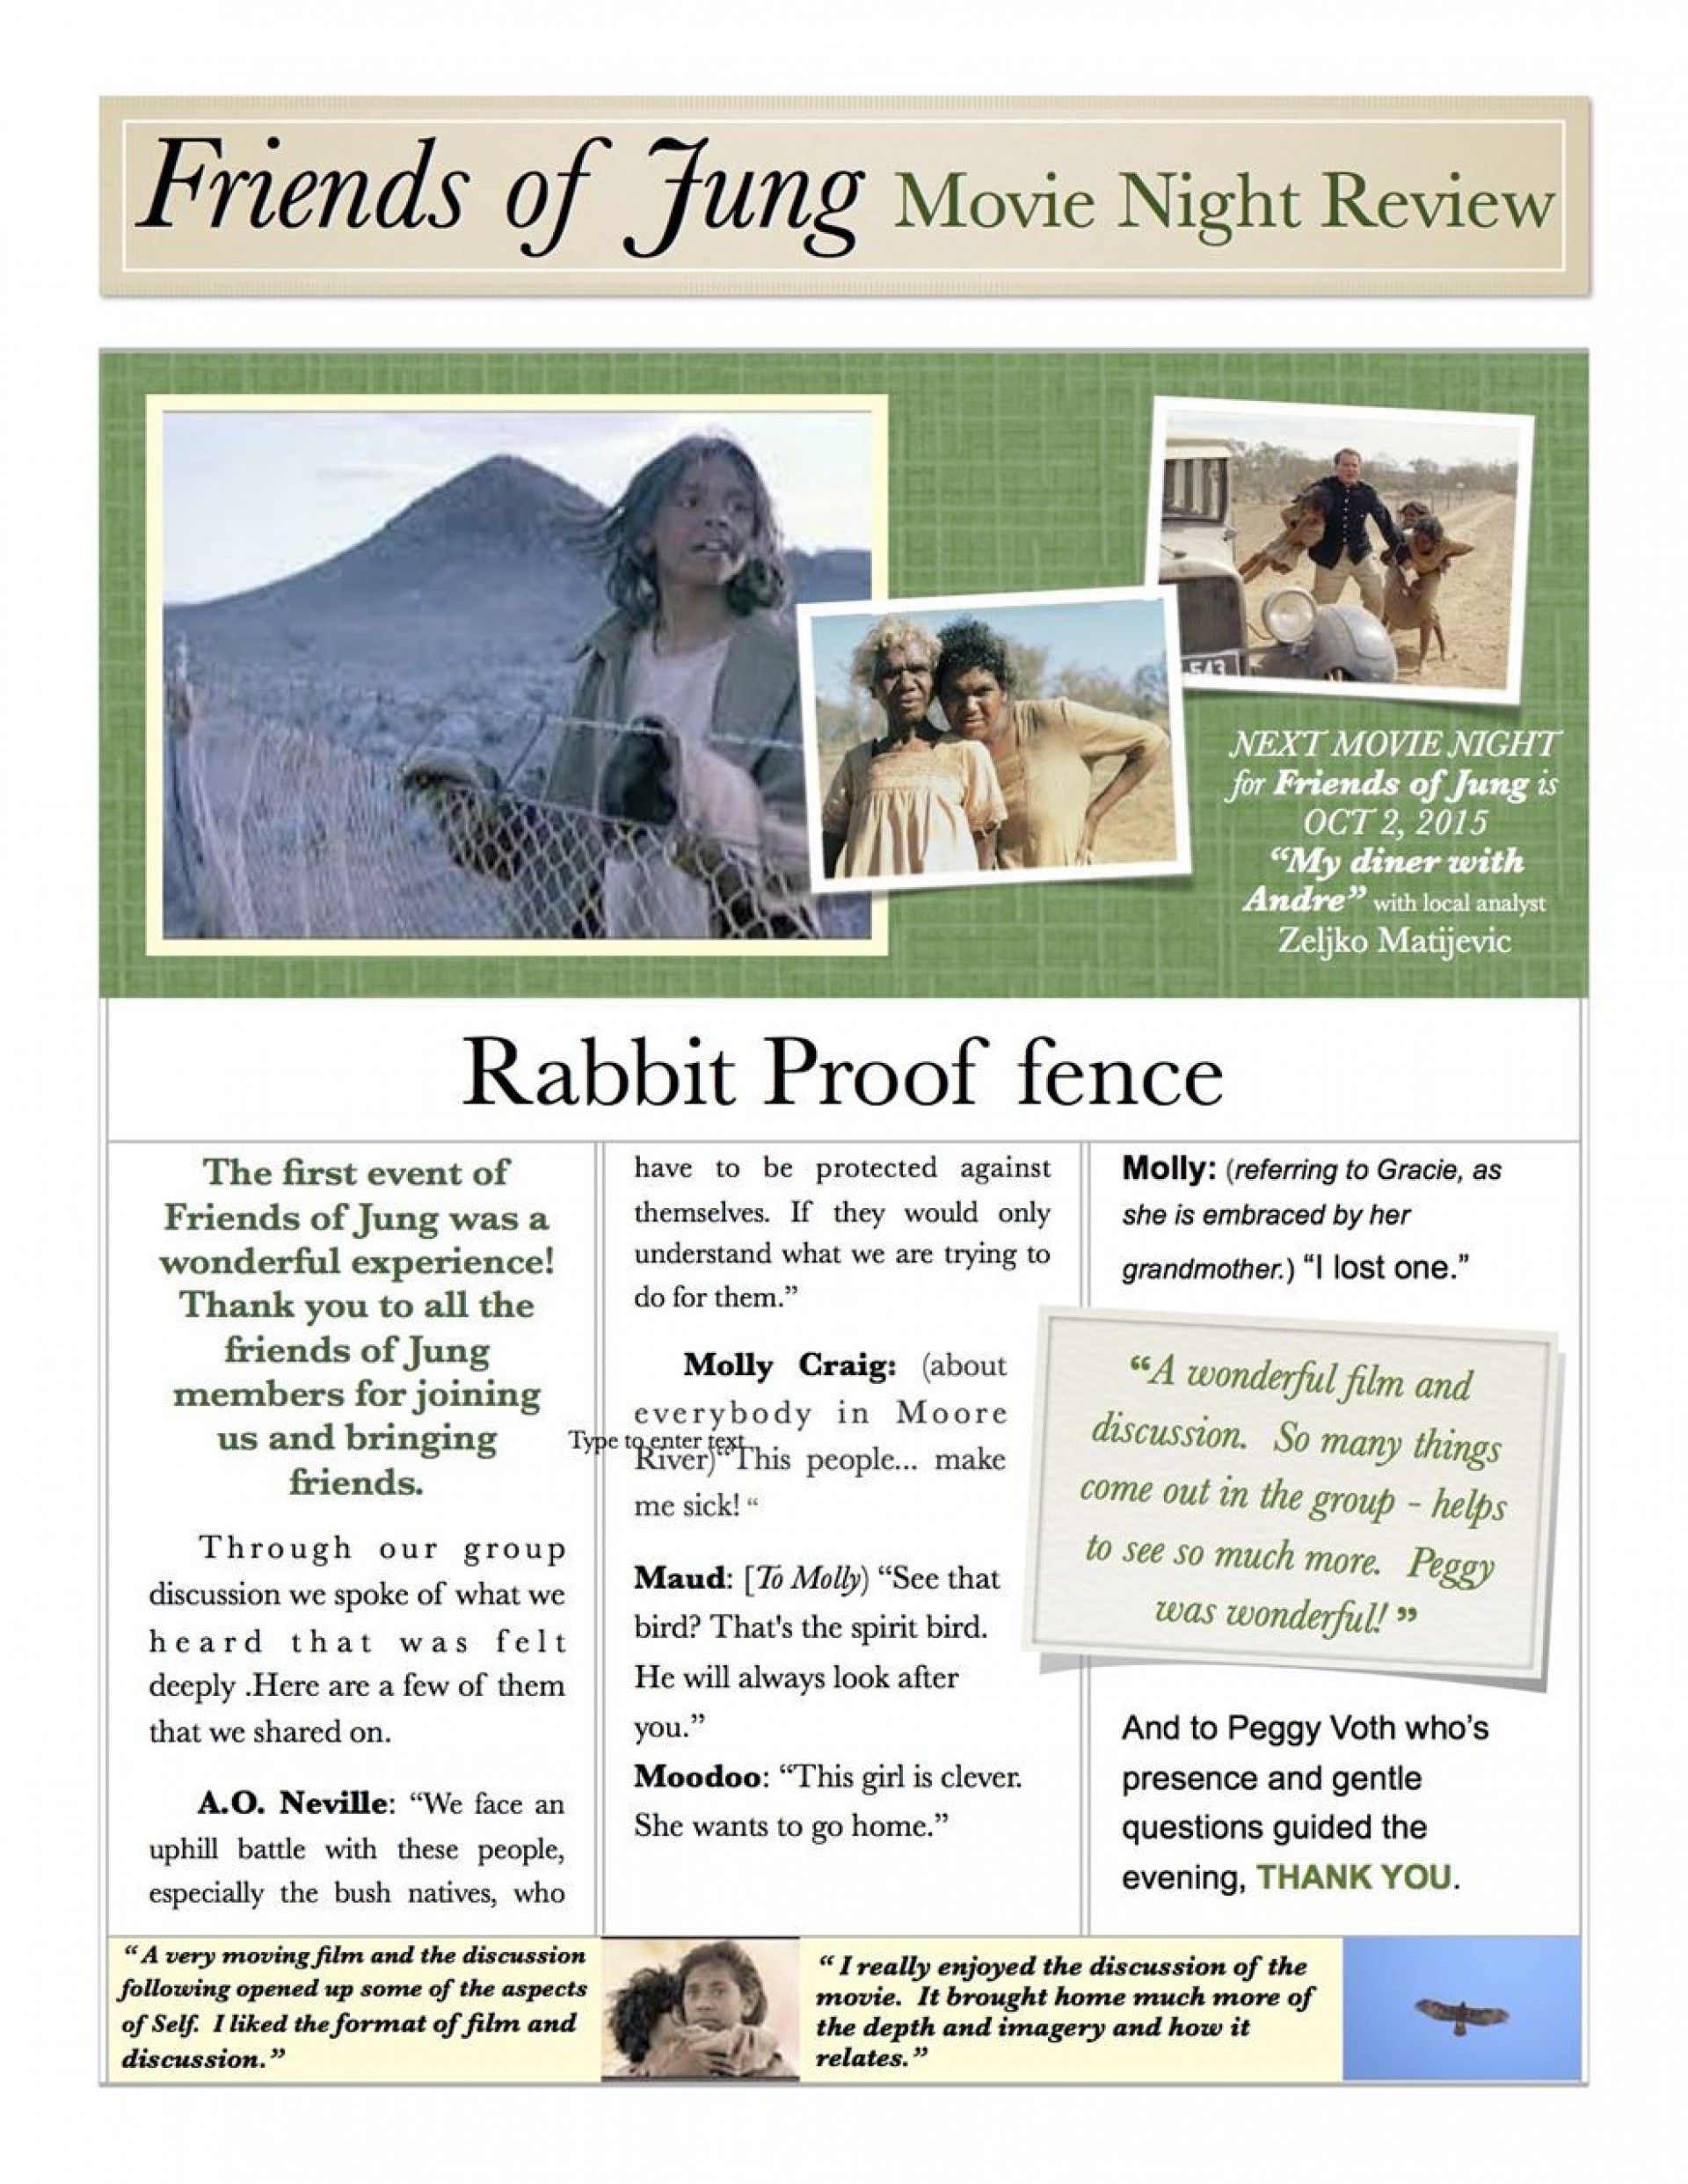 005 Essay Example Rabbit Proof Fence Review Top Film 1920